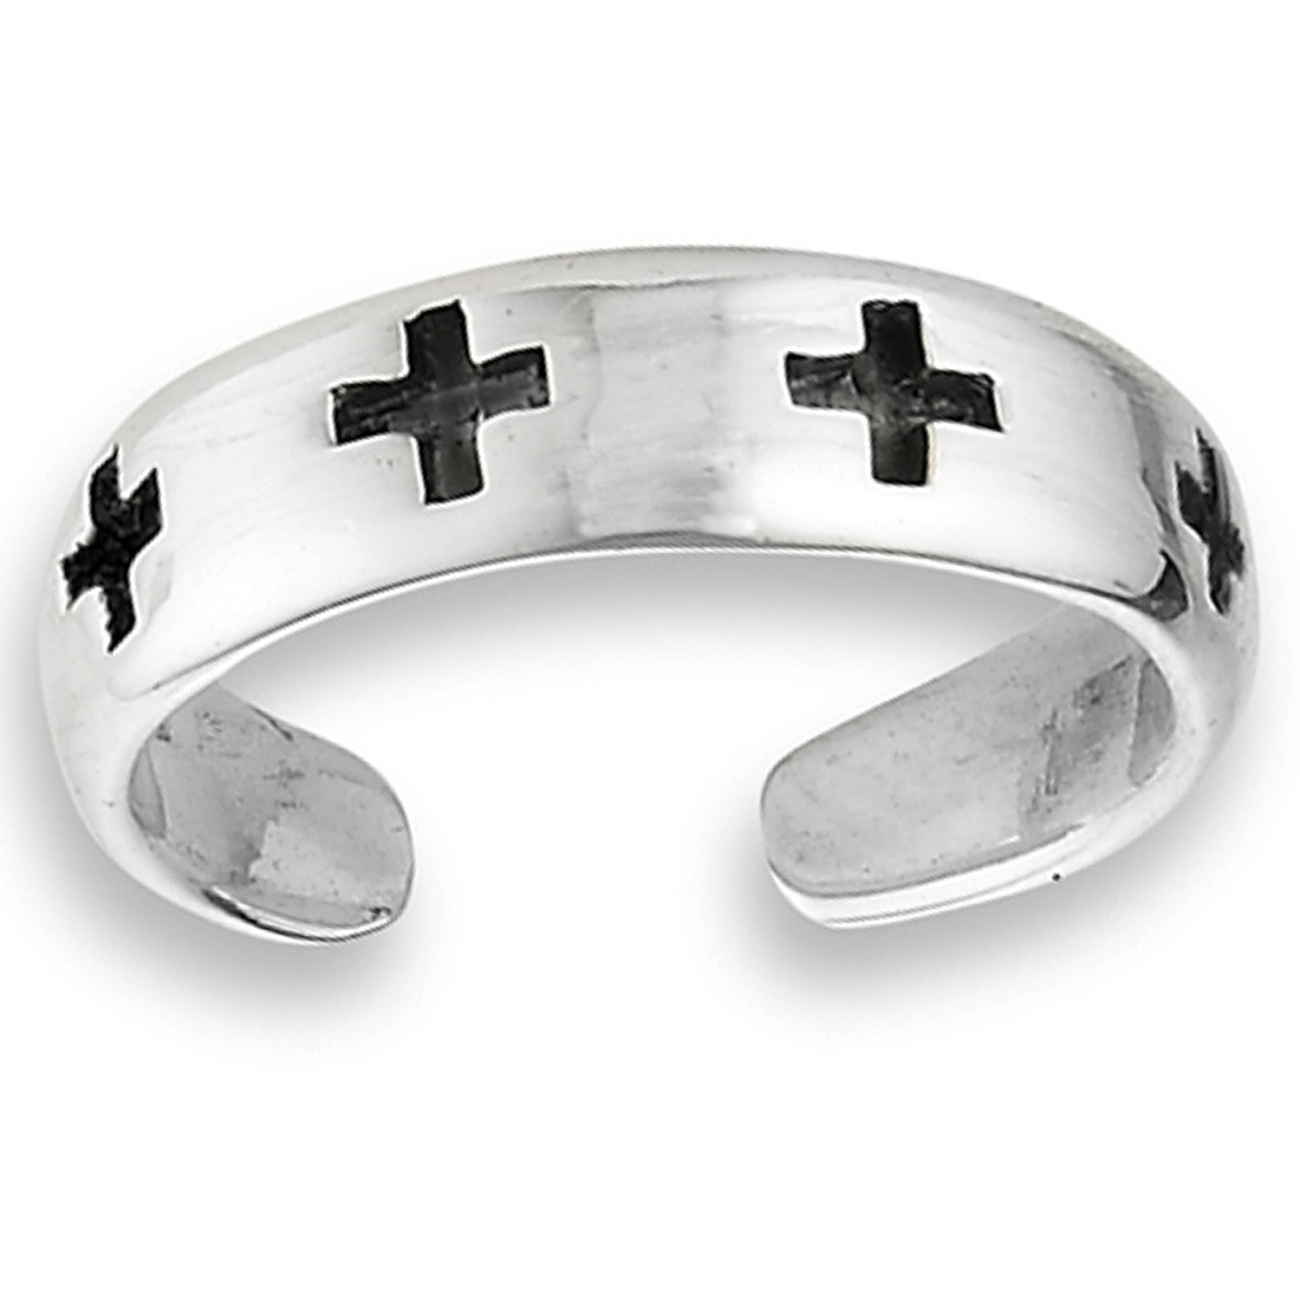 Five Antiqued Christian Crosses Adjustable Toe Ring